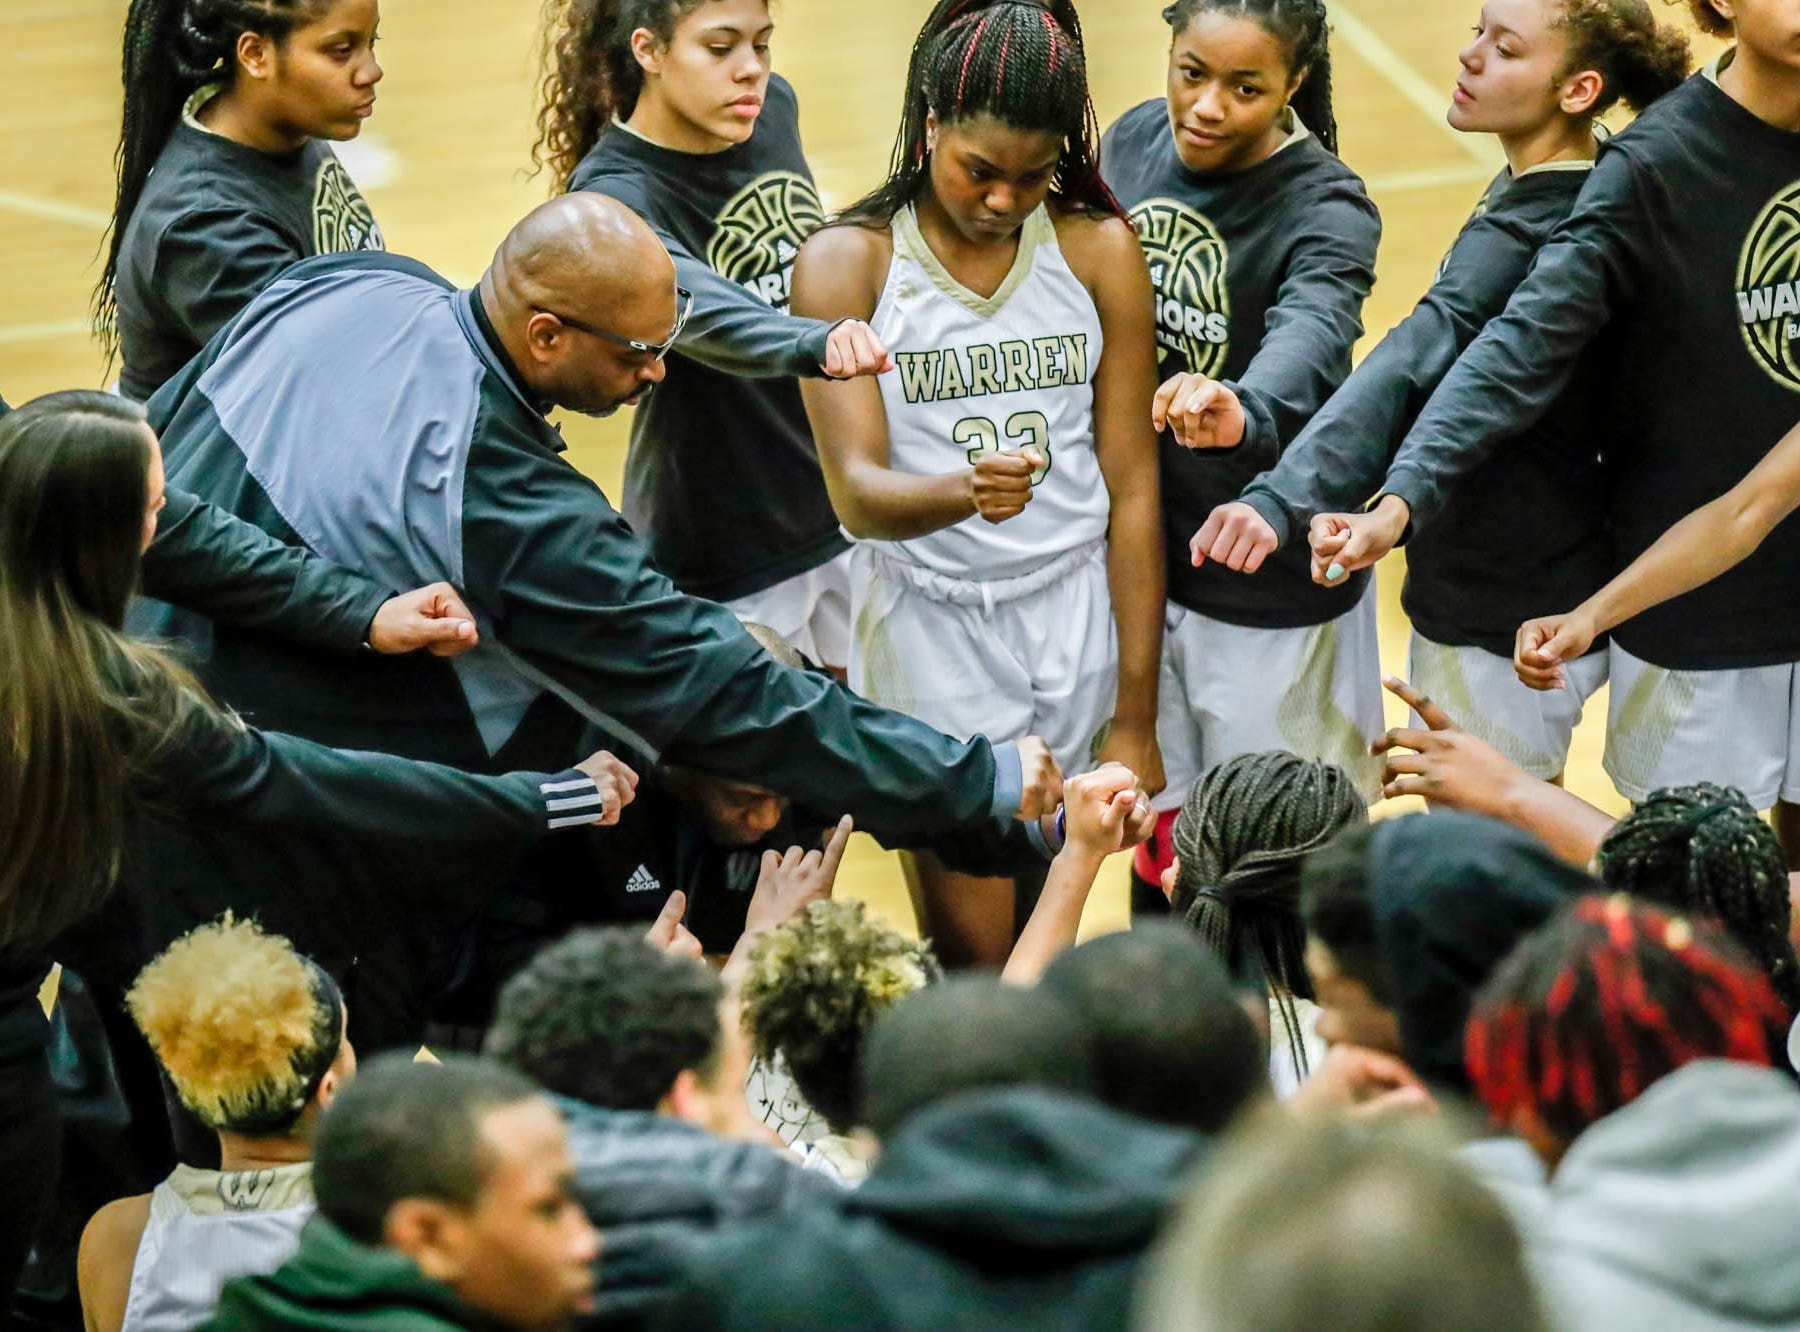 Warren Central High School's coaches and players put their fists in for team spirit during a game between Hamilton Southeastern High School and Warren Central High School, held at Warren on Thursday, Jan. 3, 2019.